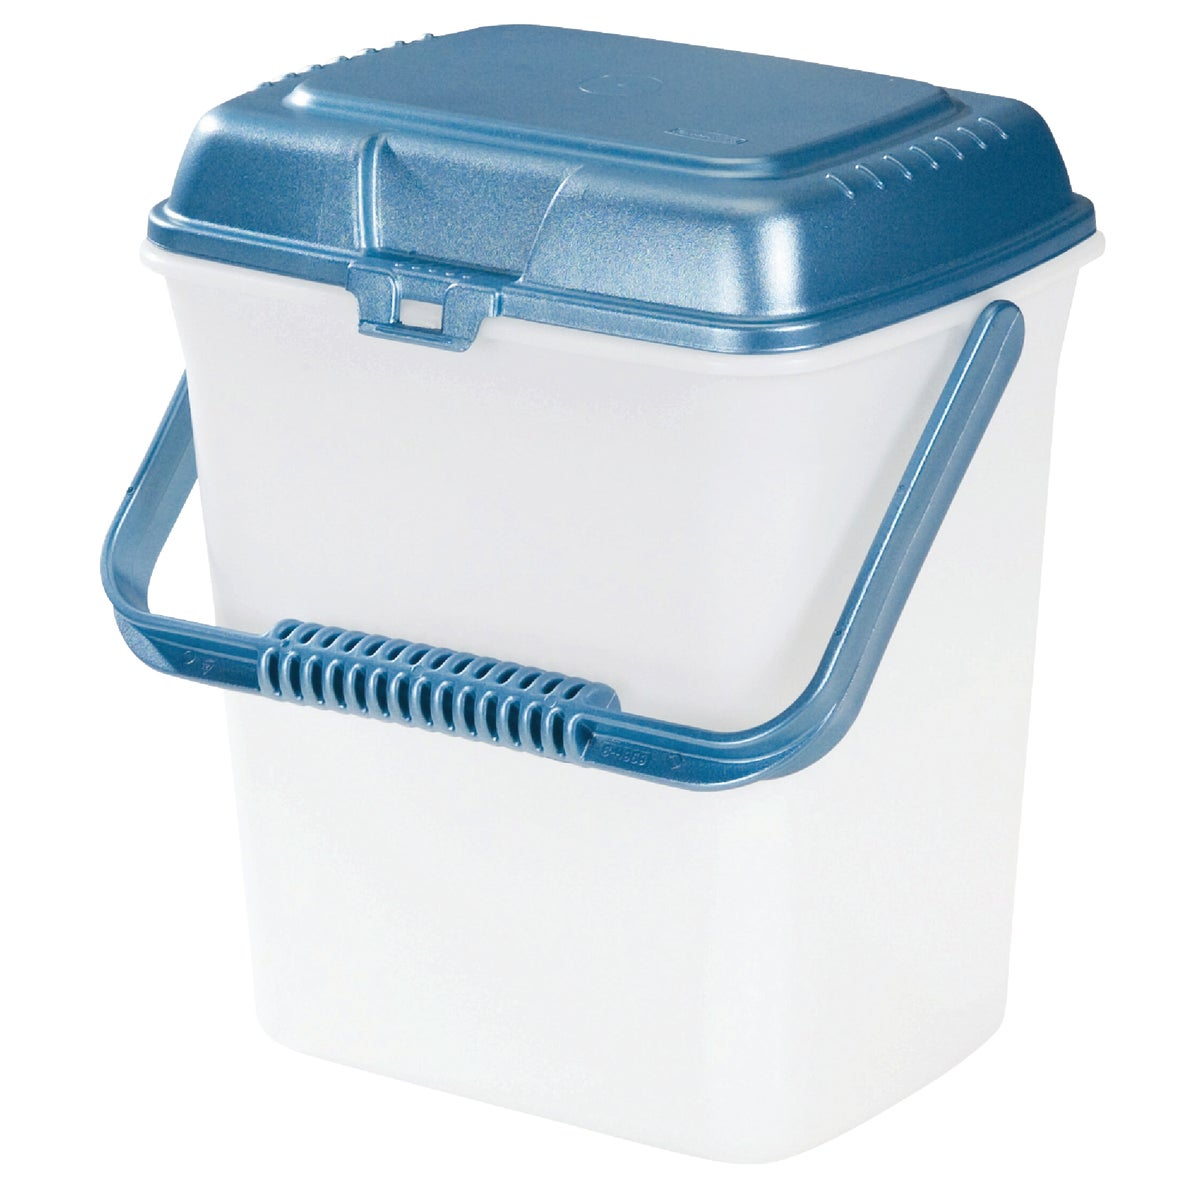 2.25GAL PLASTIC CANISTER - FG696204ROYBL by Rubbermaid Home